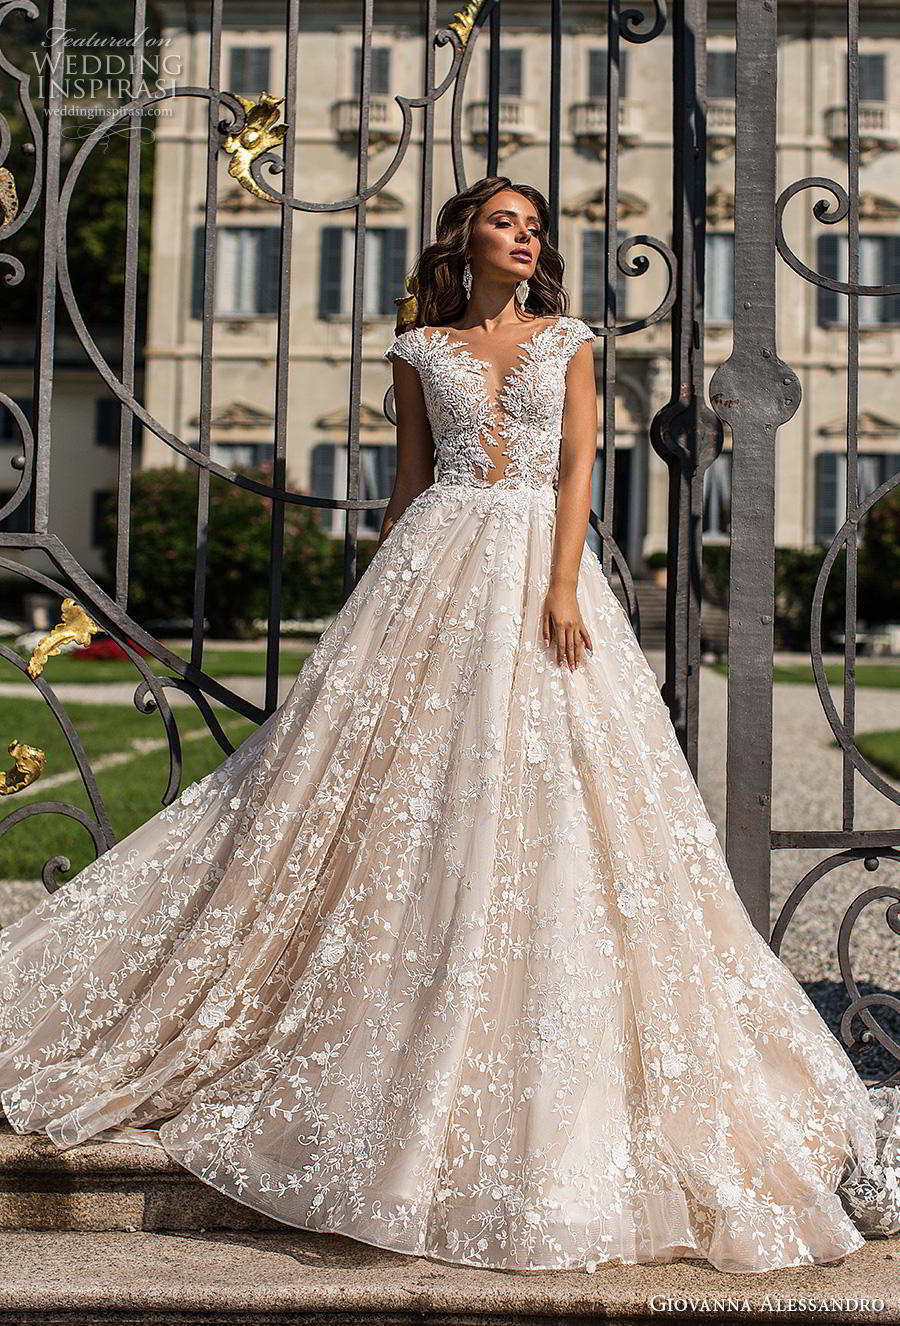 giovanna alessandro 2019 bridal cap sleeves deep plunging sweetheart neckline full embellishment princess a  line wedding dress sheer button back chapel train (4) mv